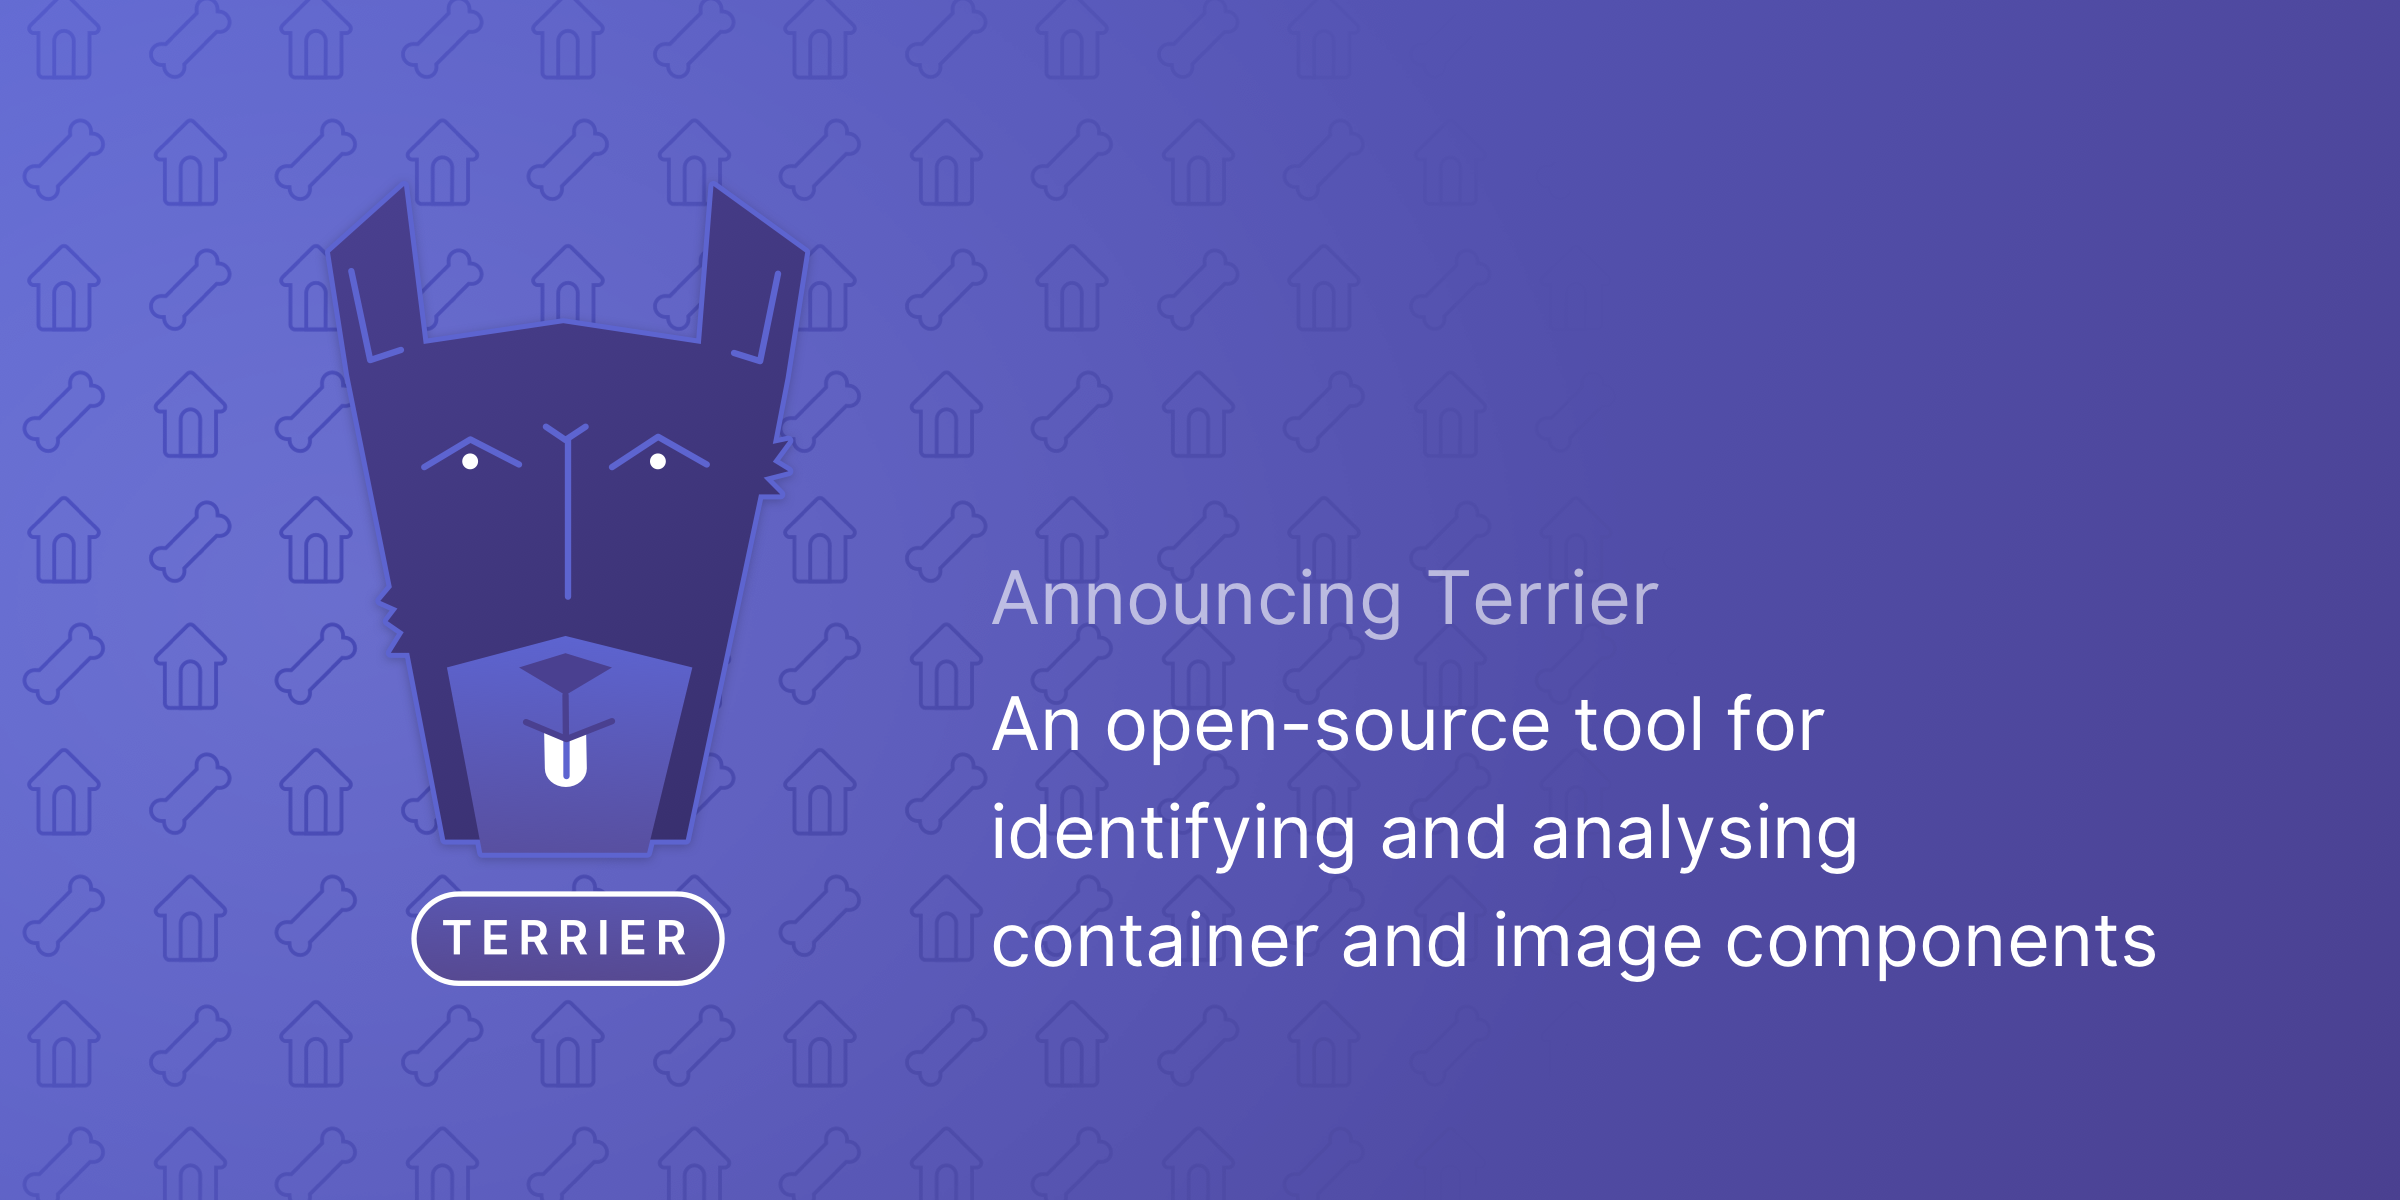 Announcing Terrier: An open-source tool for identifying and analysing container and image components